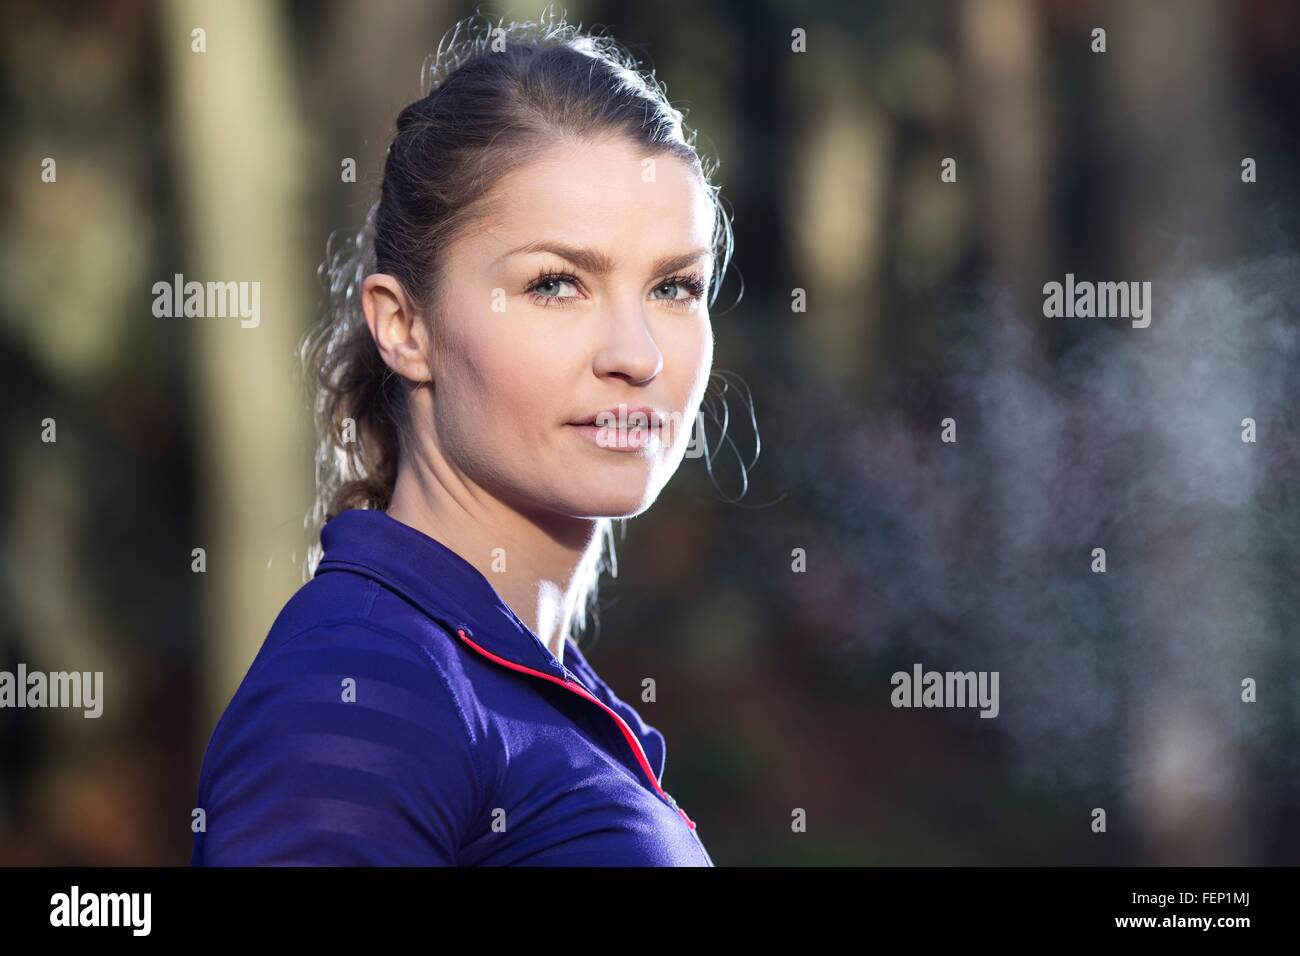 Portrait of young woman looking at camera, condensation from breath - Stock Image